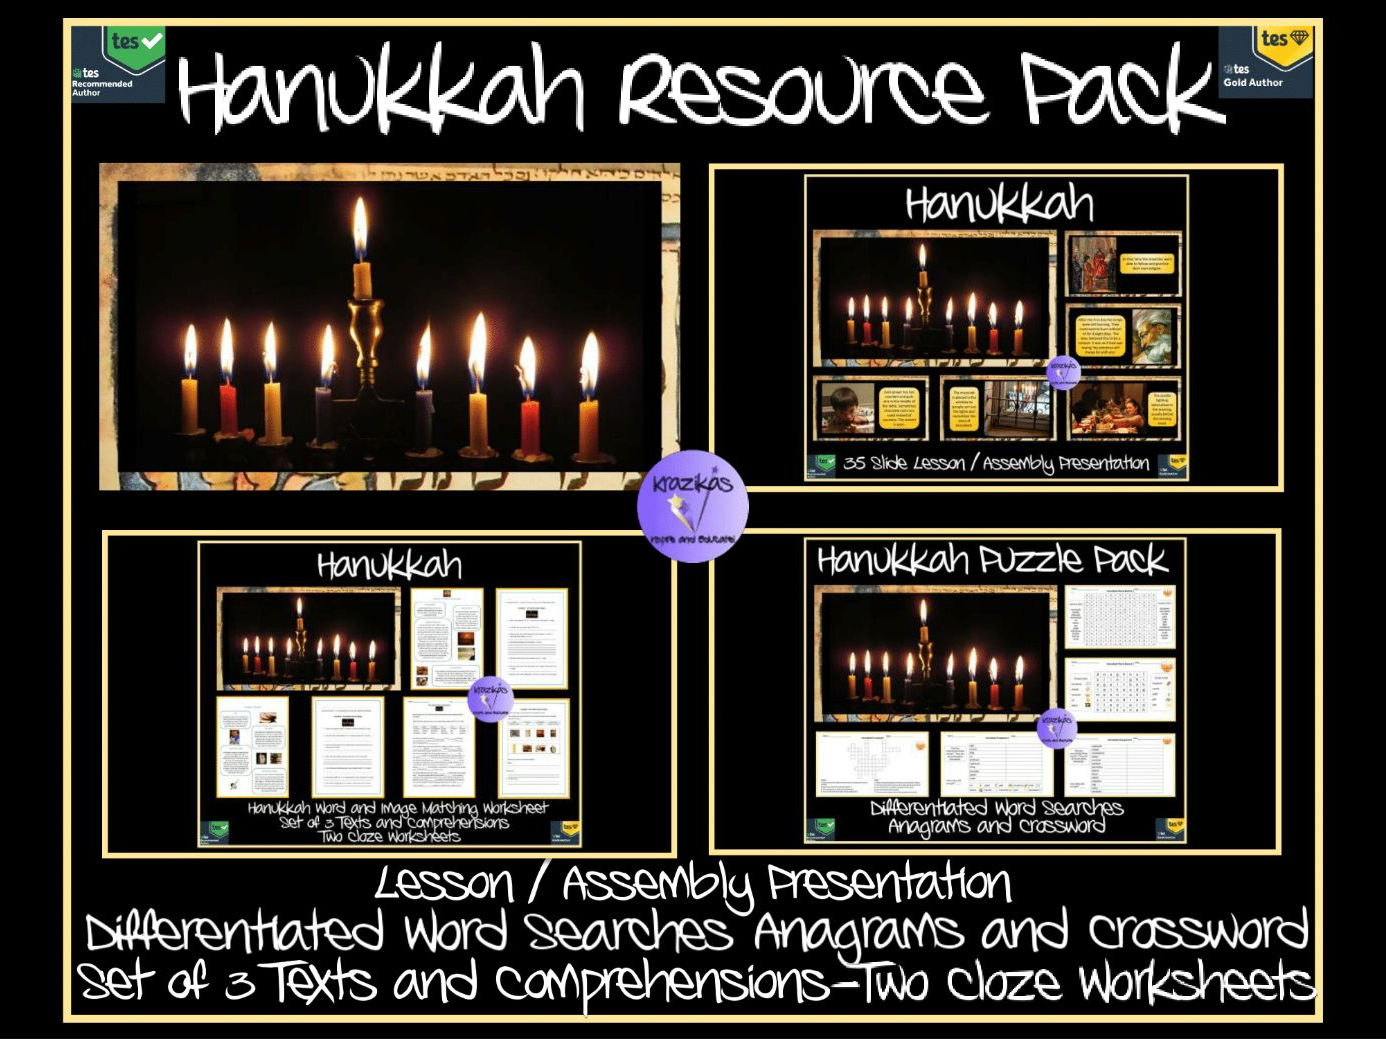 Hanukkah Resource Pack - PowerPoint, Texts, Comprehensions, Worksheets and Puzzles